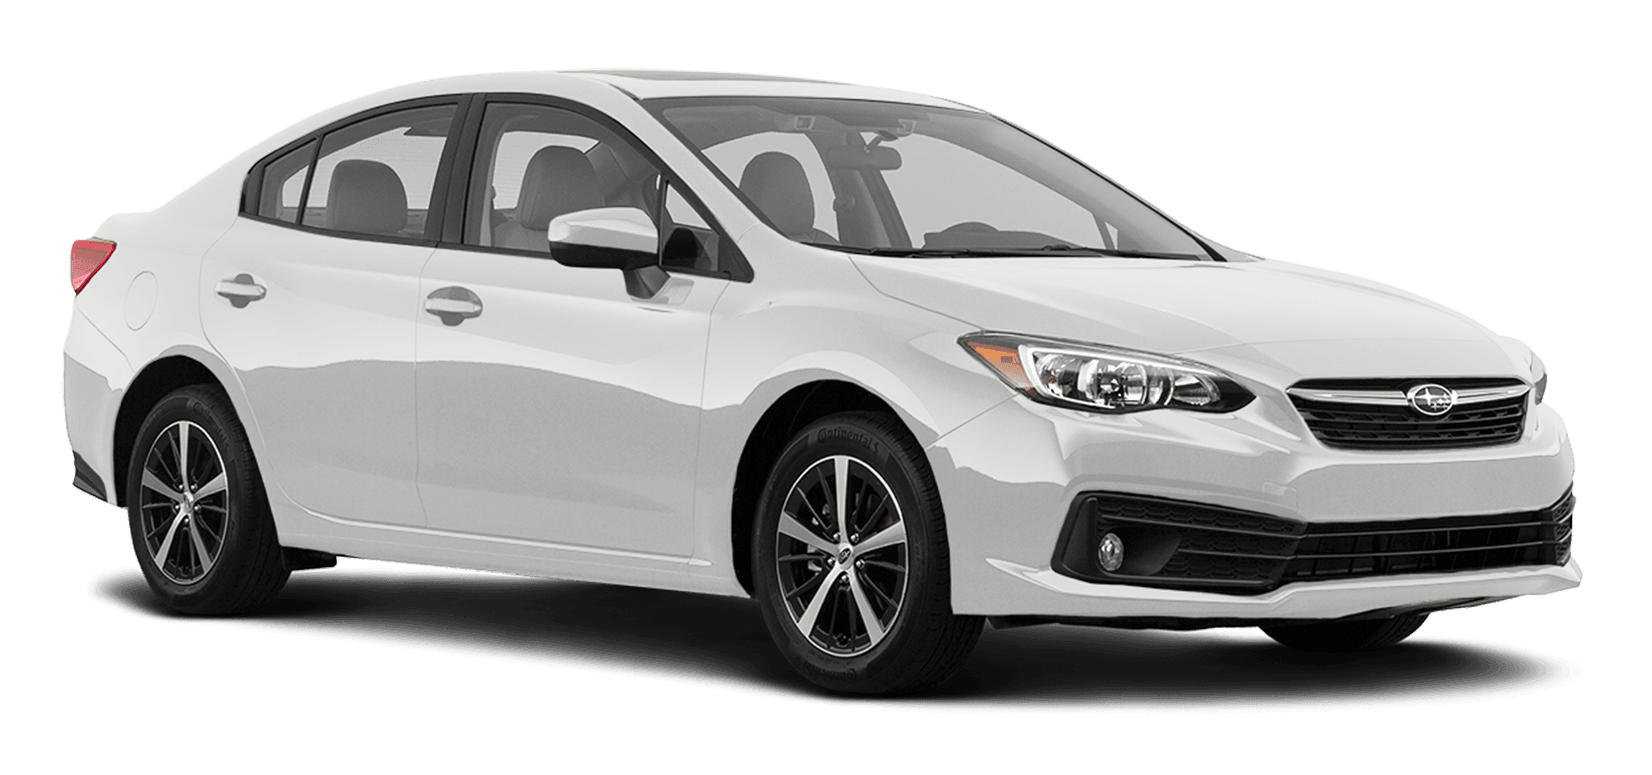 2020 subaru impreza for sale in Edmonton